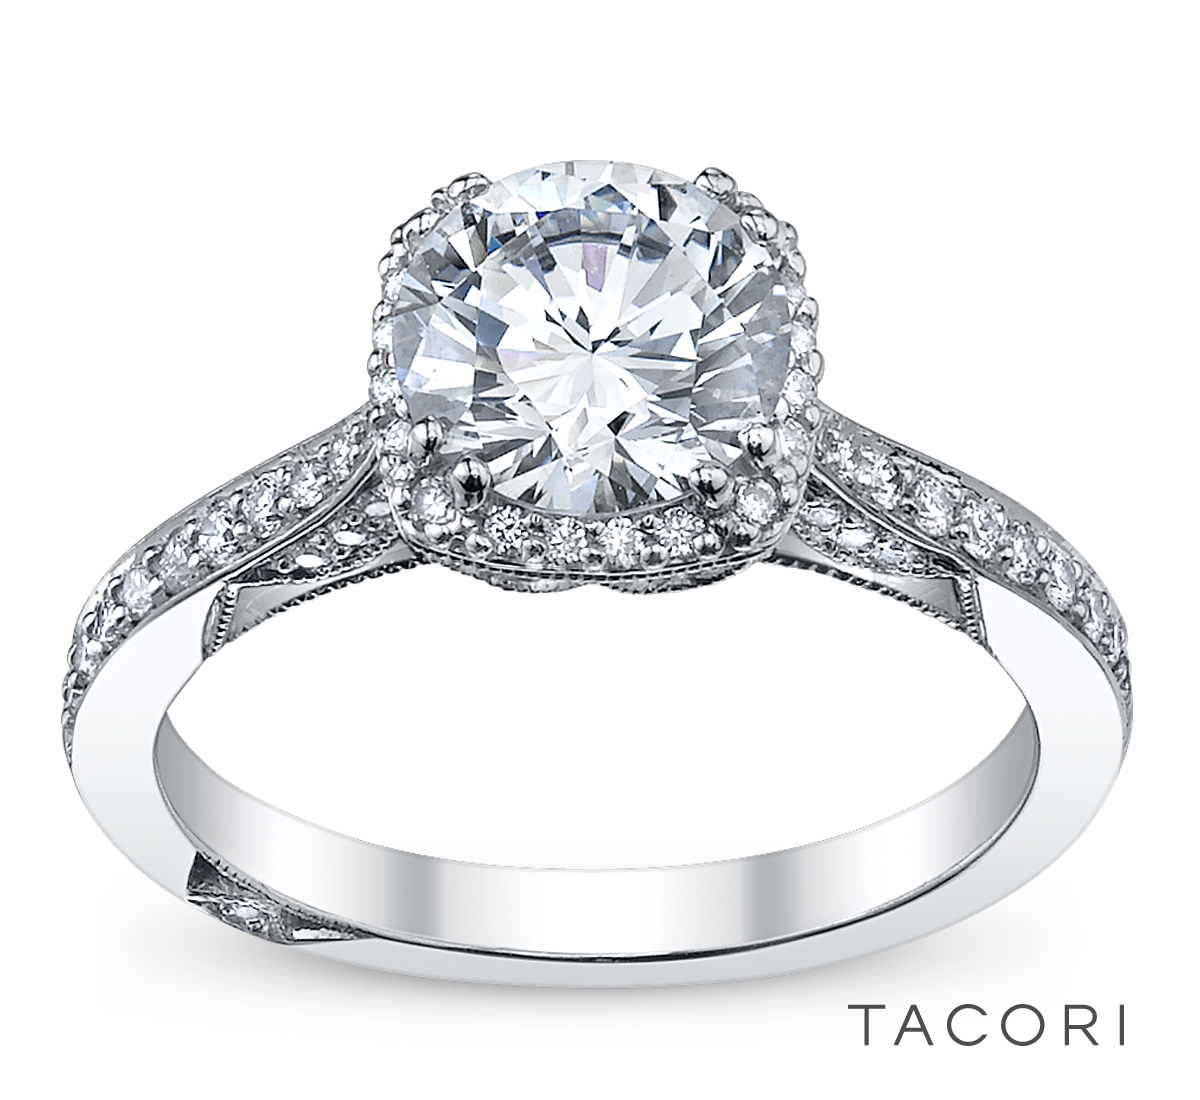 Diamond Tacori Bands: Robbins Brothers Engagement Ring Of The Day-Tacori